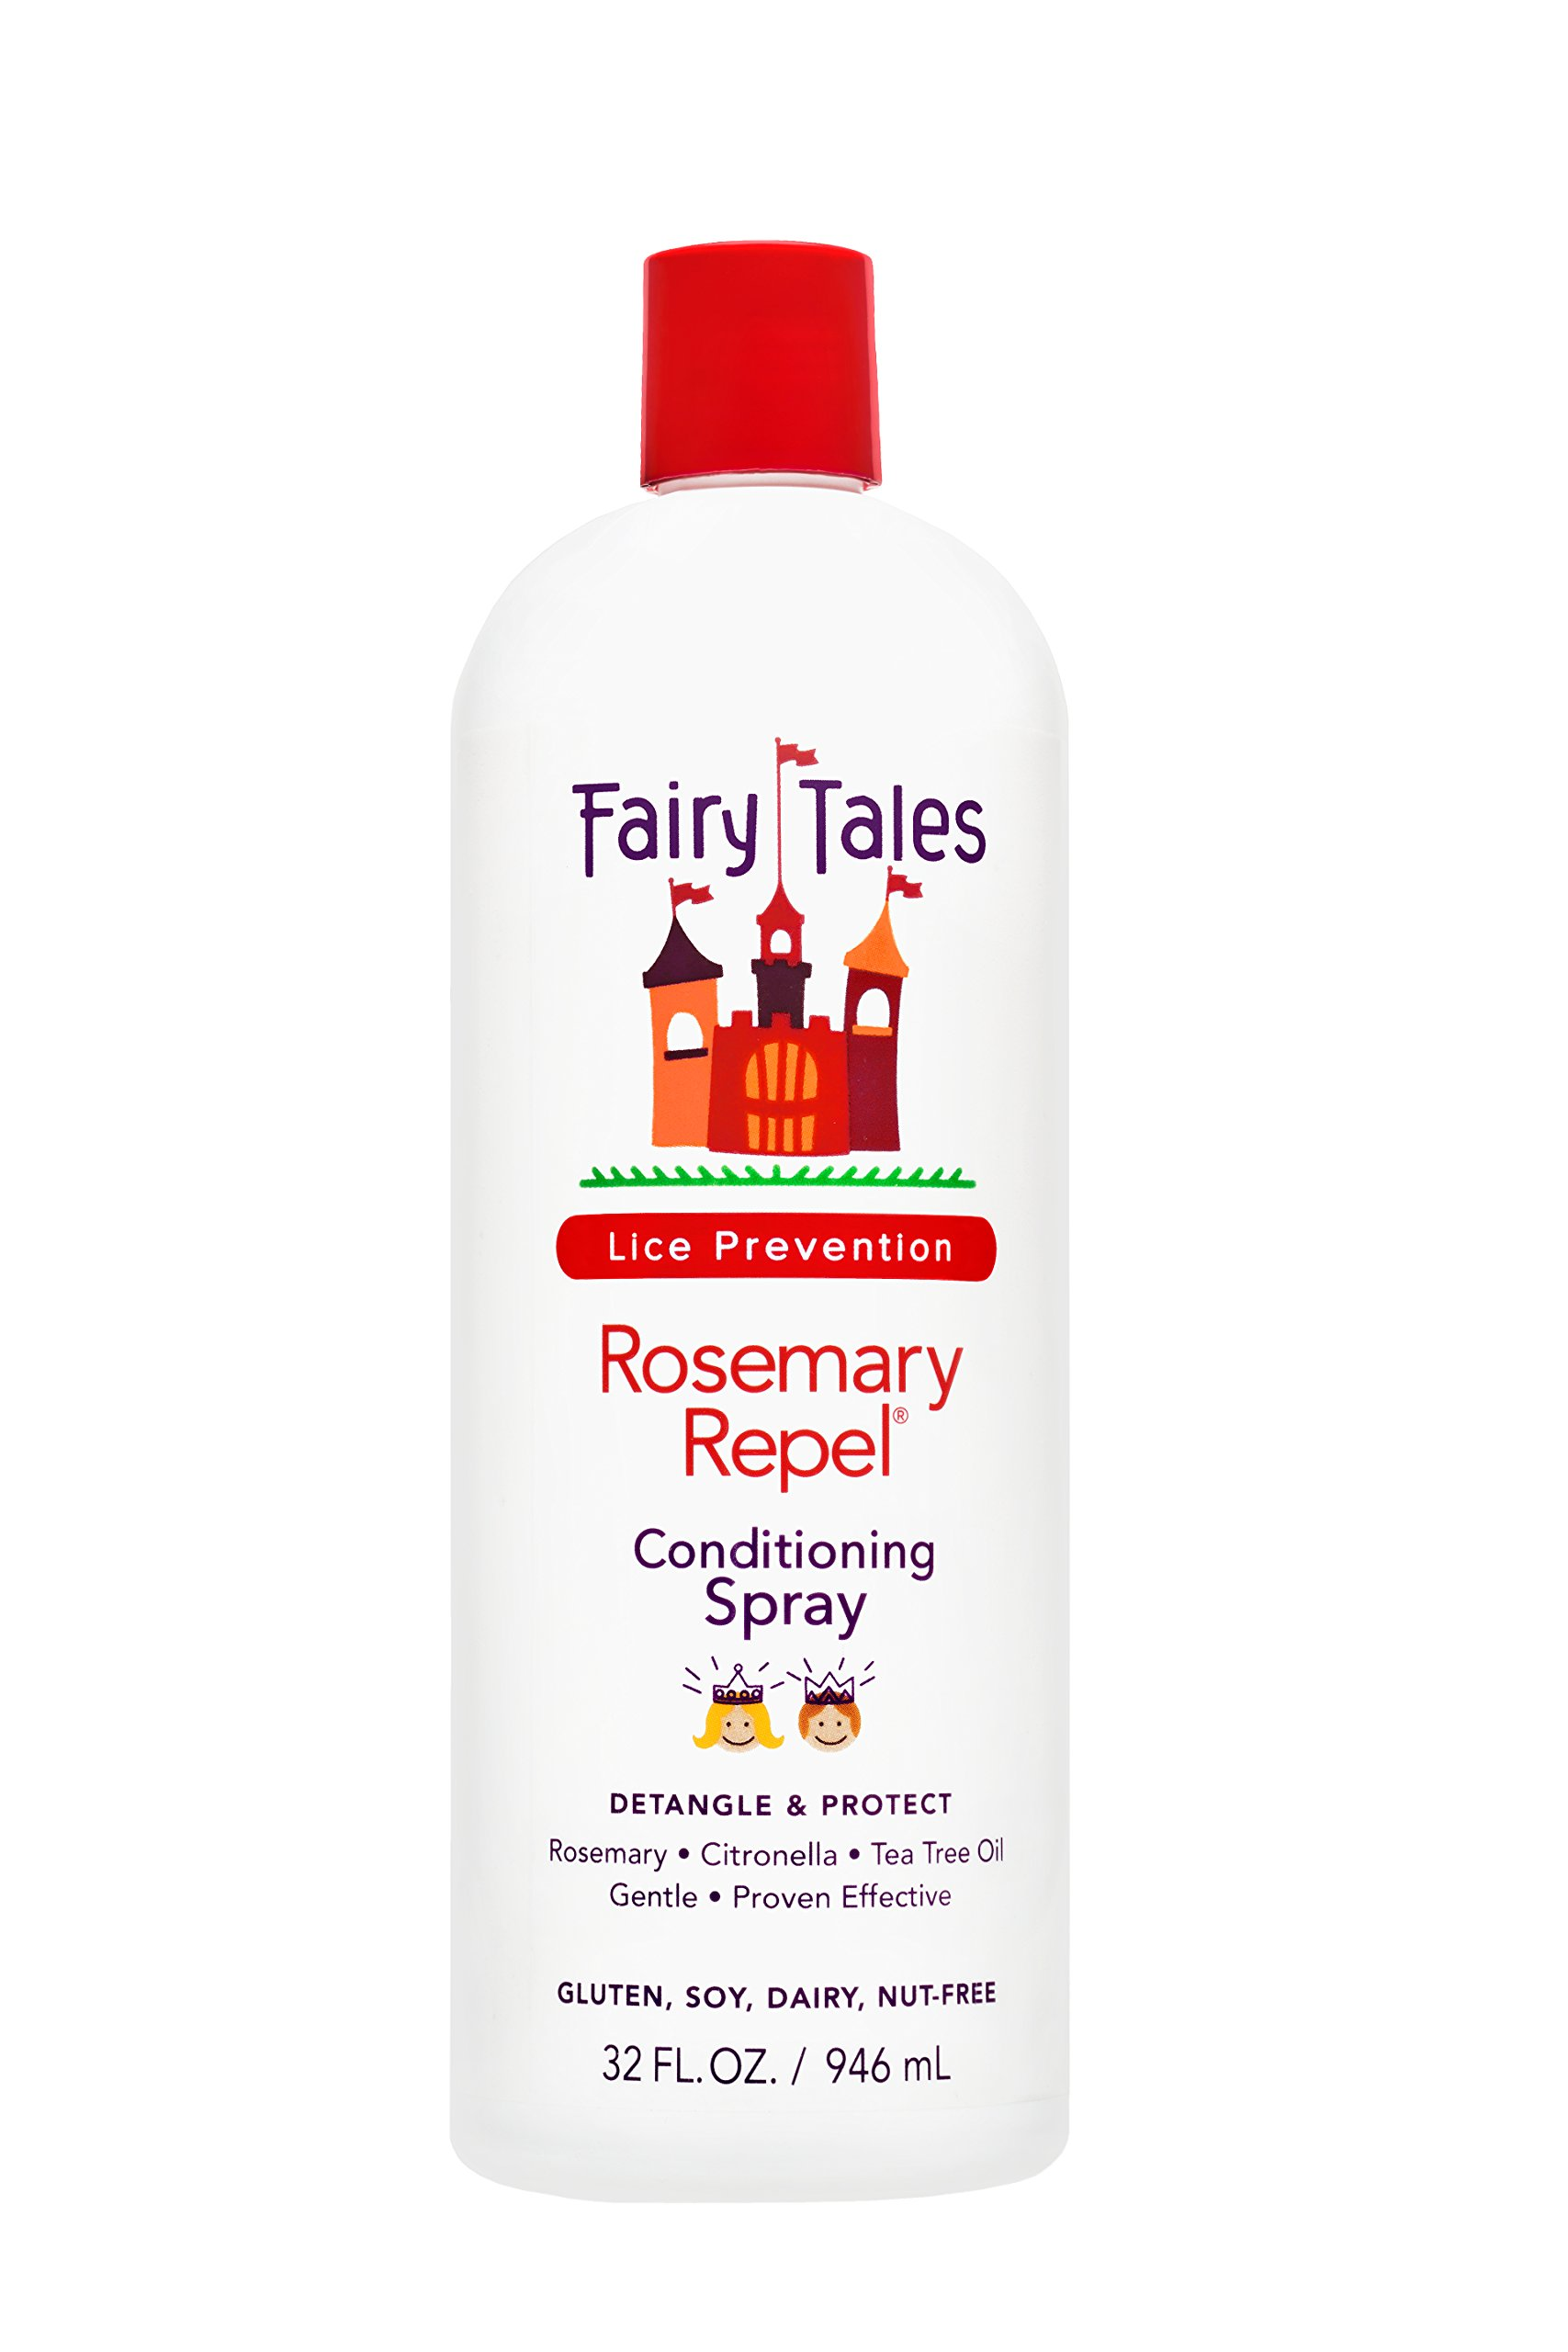 Fairy Tales Rosemary Repel Daily Kid Conditioning Spray Refill for Lice Prevention - 32 Fl. Oz